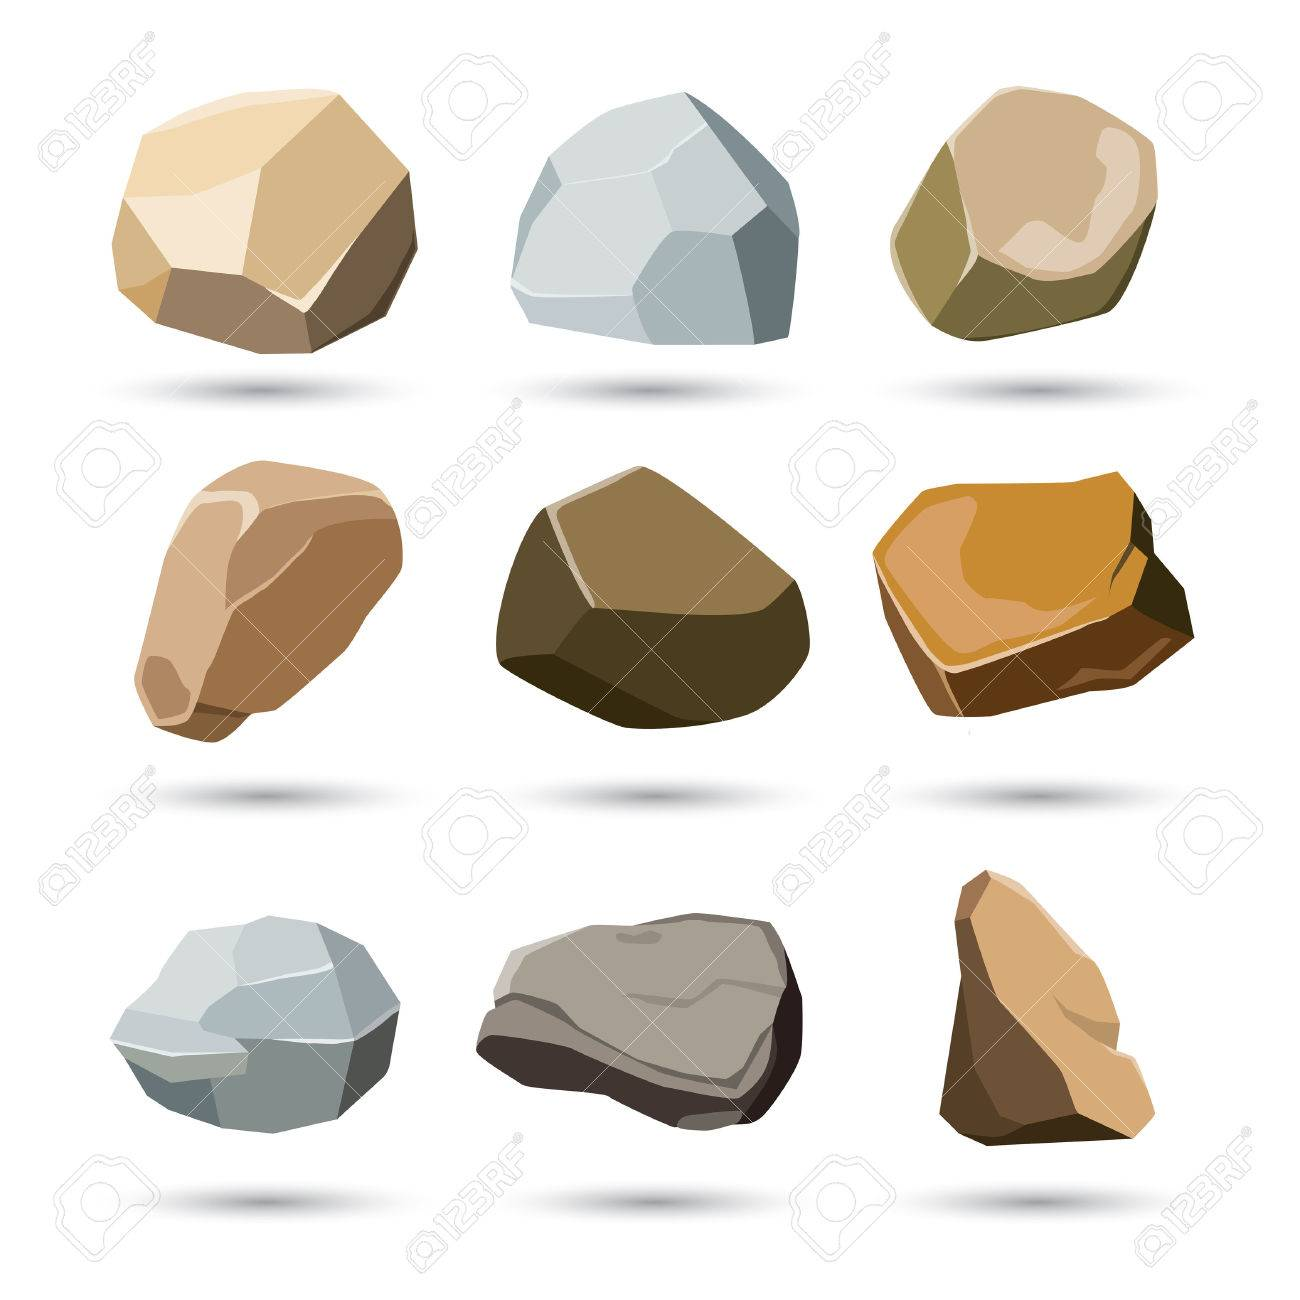 rock and stone set - 58388078